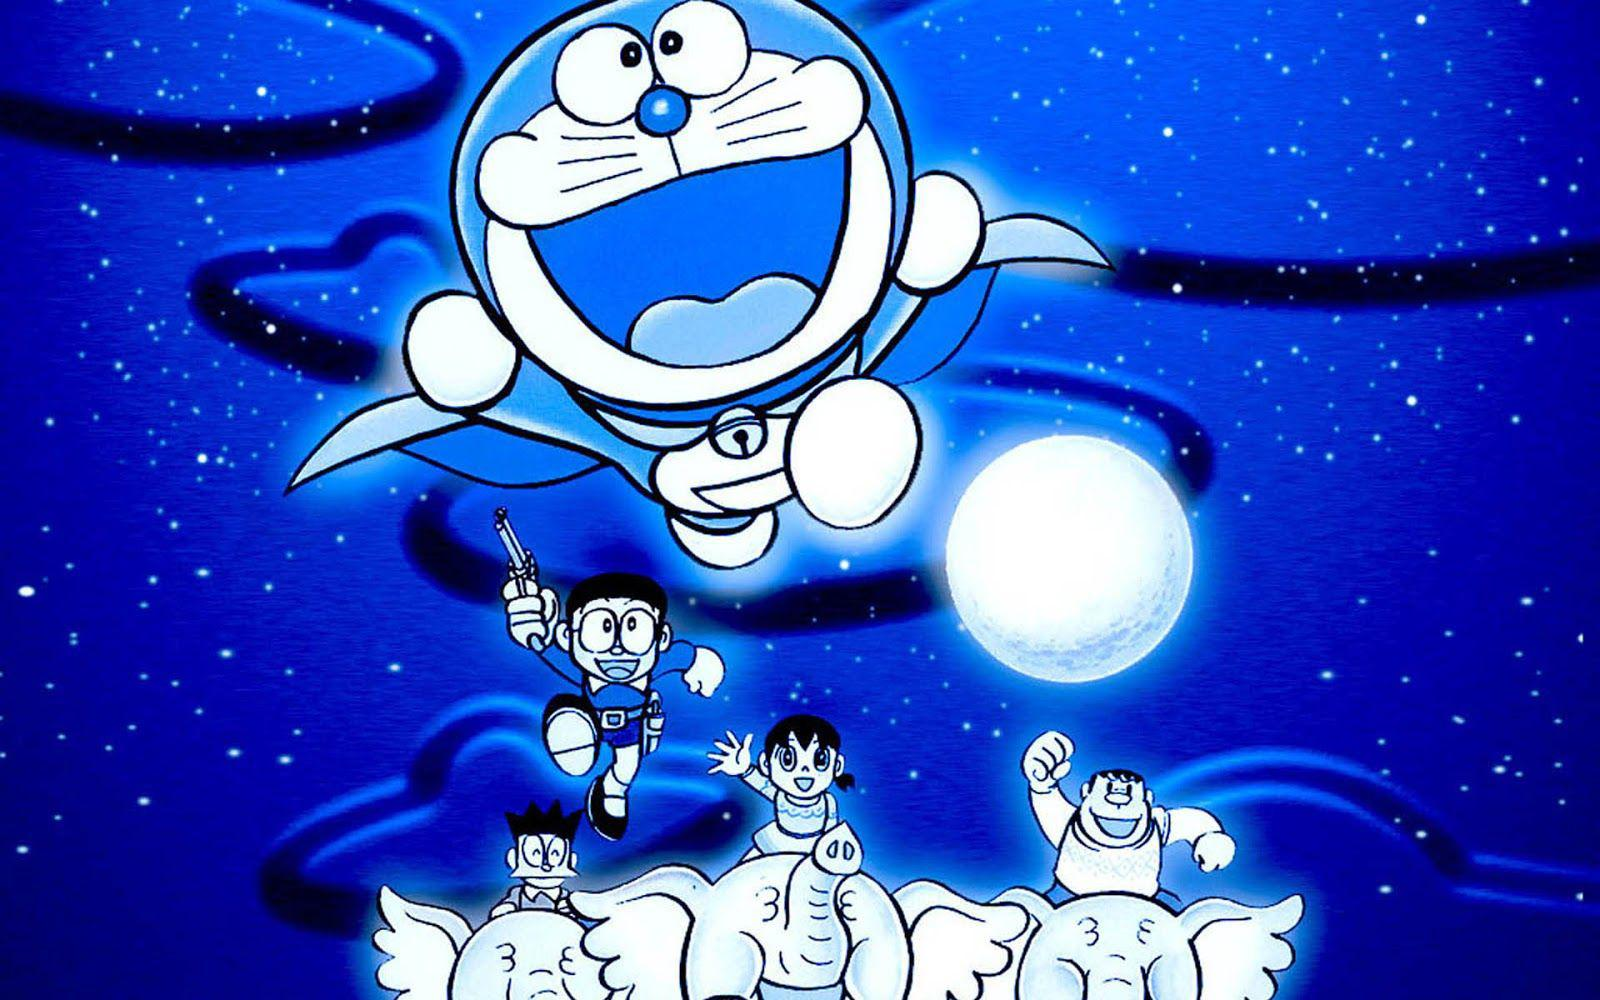 Doraemon Wallpaper Pictures All in One